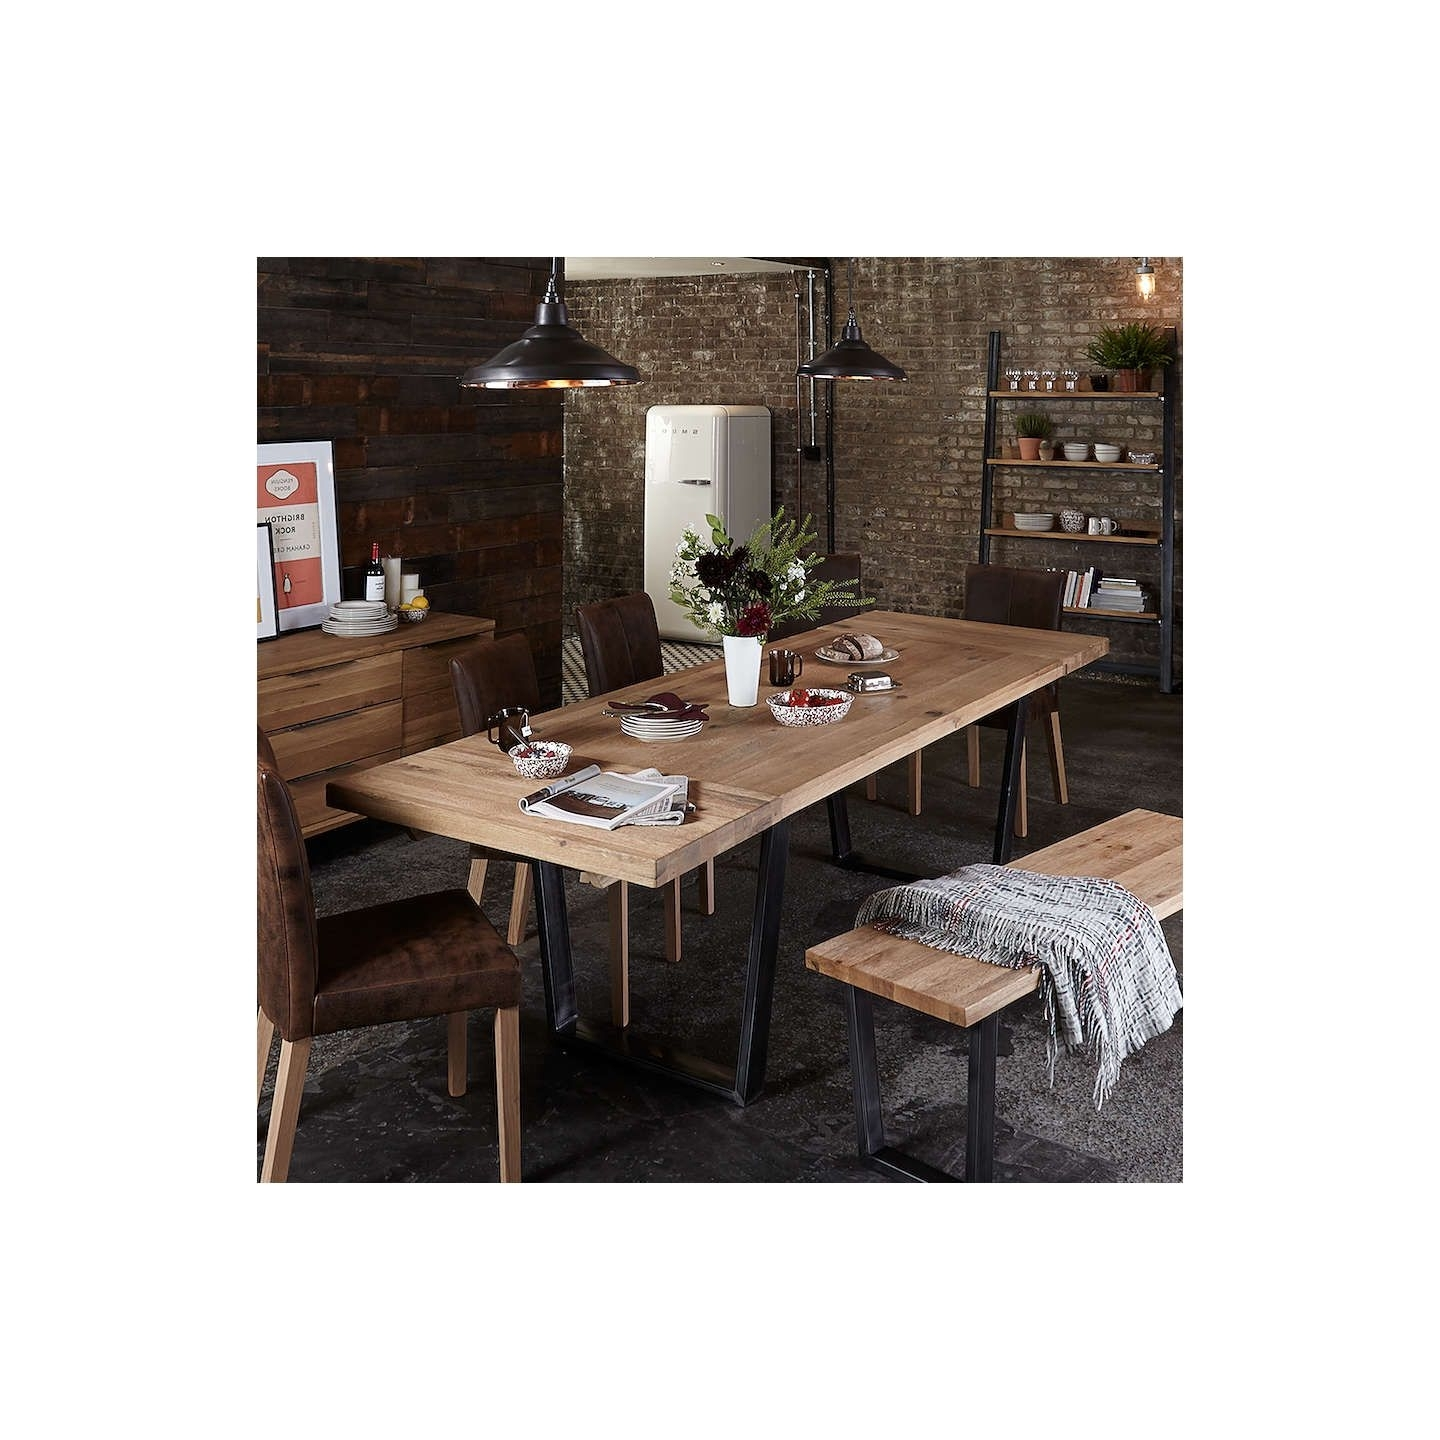 John Lewis & Partners Calia 8 12 Seater Extending Dining Table, Oak Throughout Best And Newest Extendable Dining Tables With 8 Seats (Gallery 22 of 25)